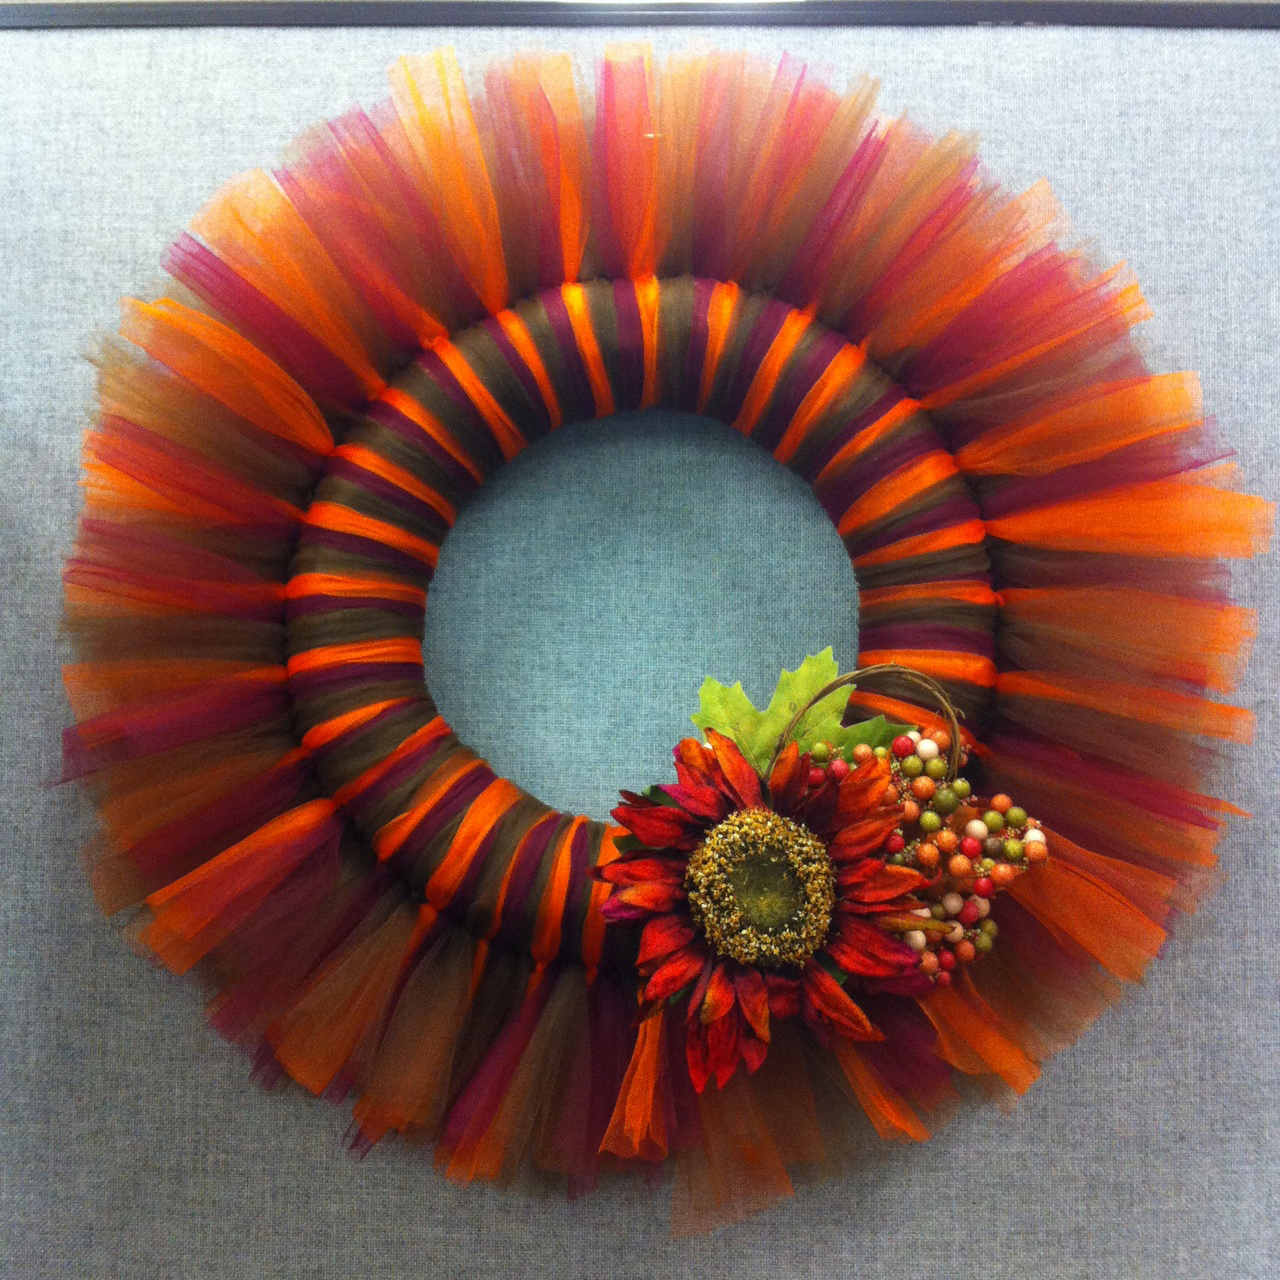 How to Make a Tulle Wreath: 21 Tutorials